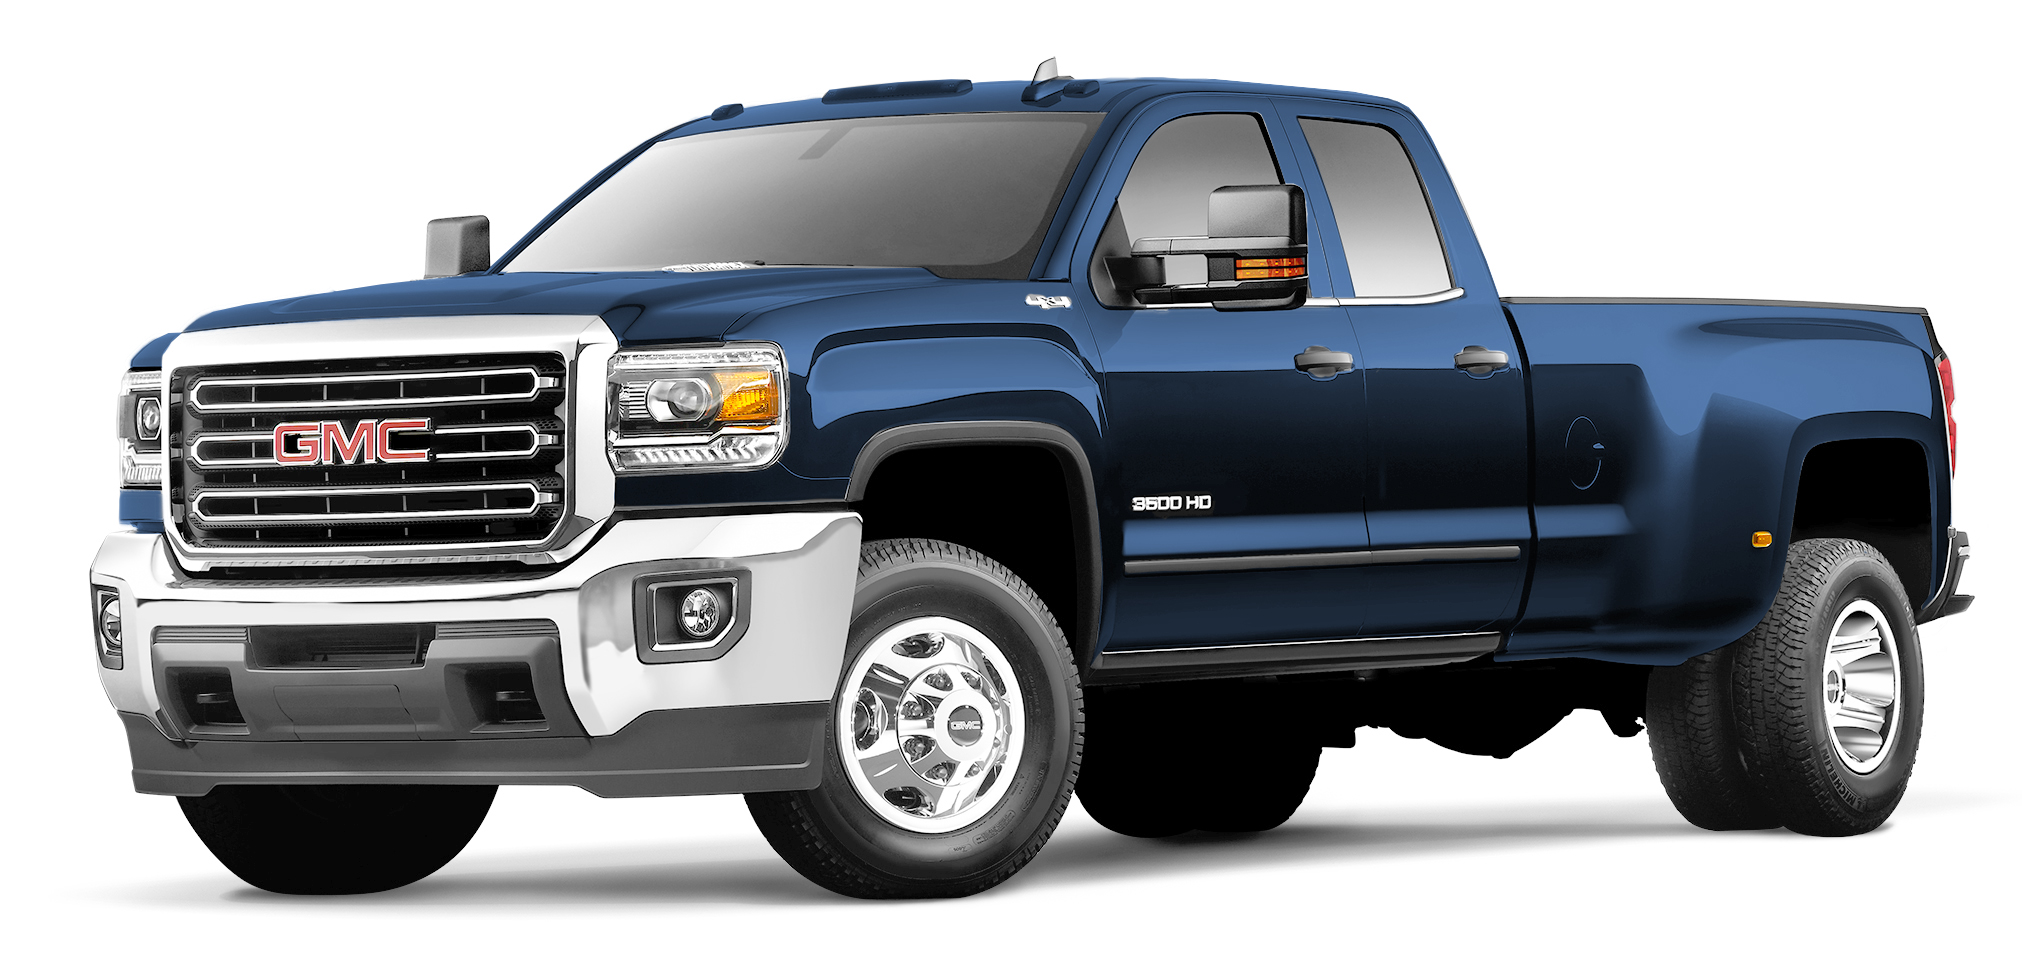 GMC Sierra 3500 HD Blue